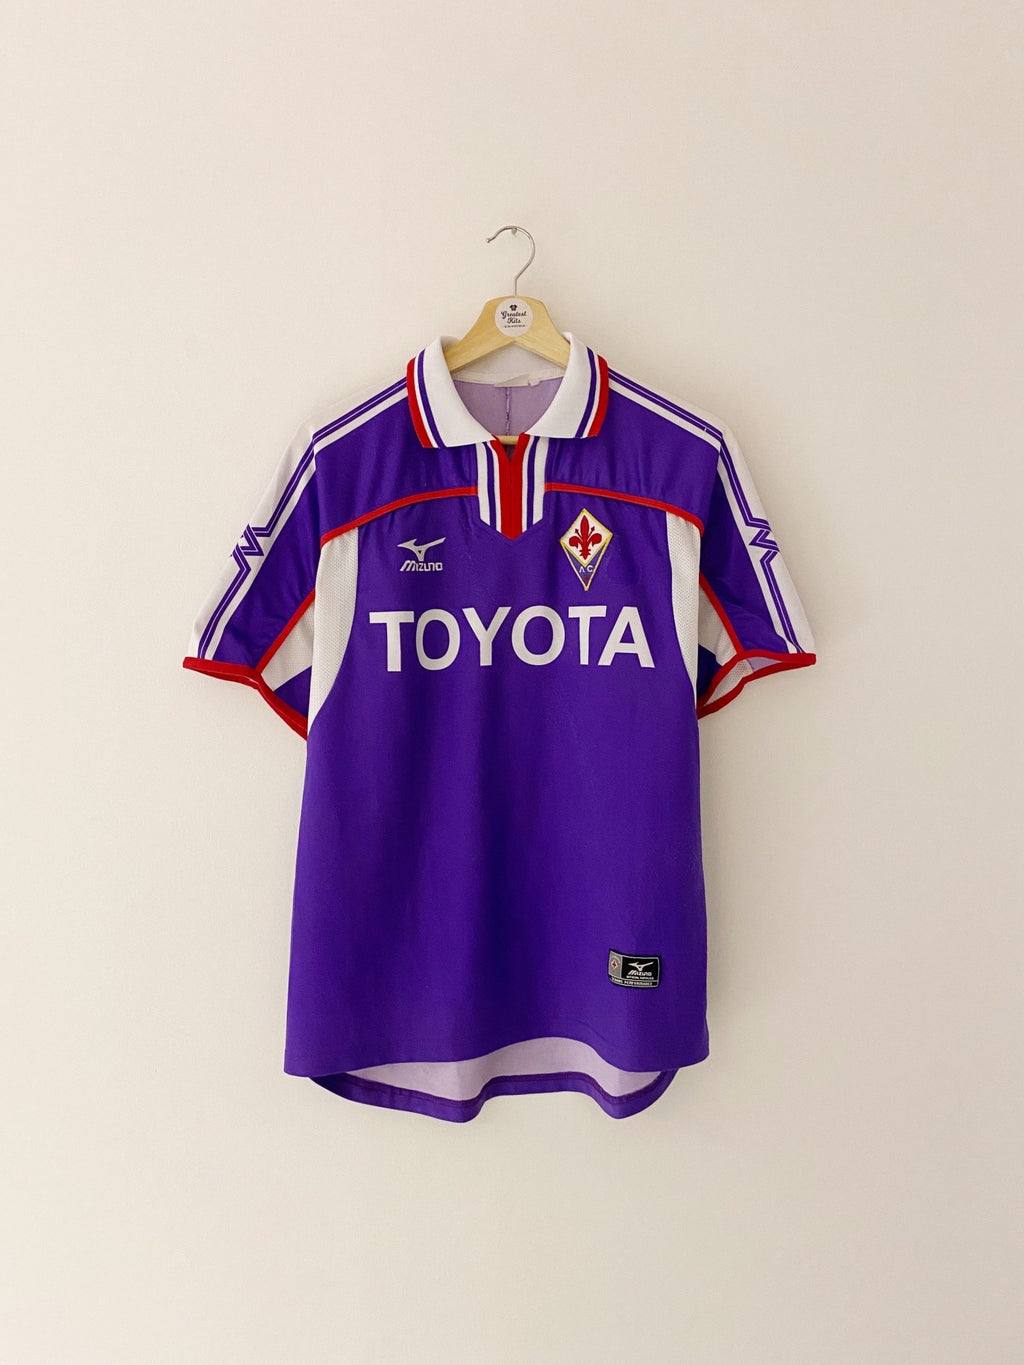 2001/02 Fiorentina Home Shirt (S) 6.5/10